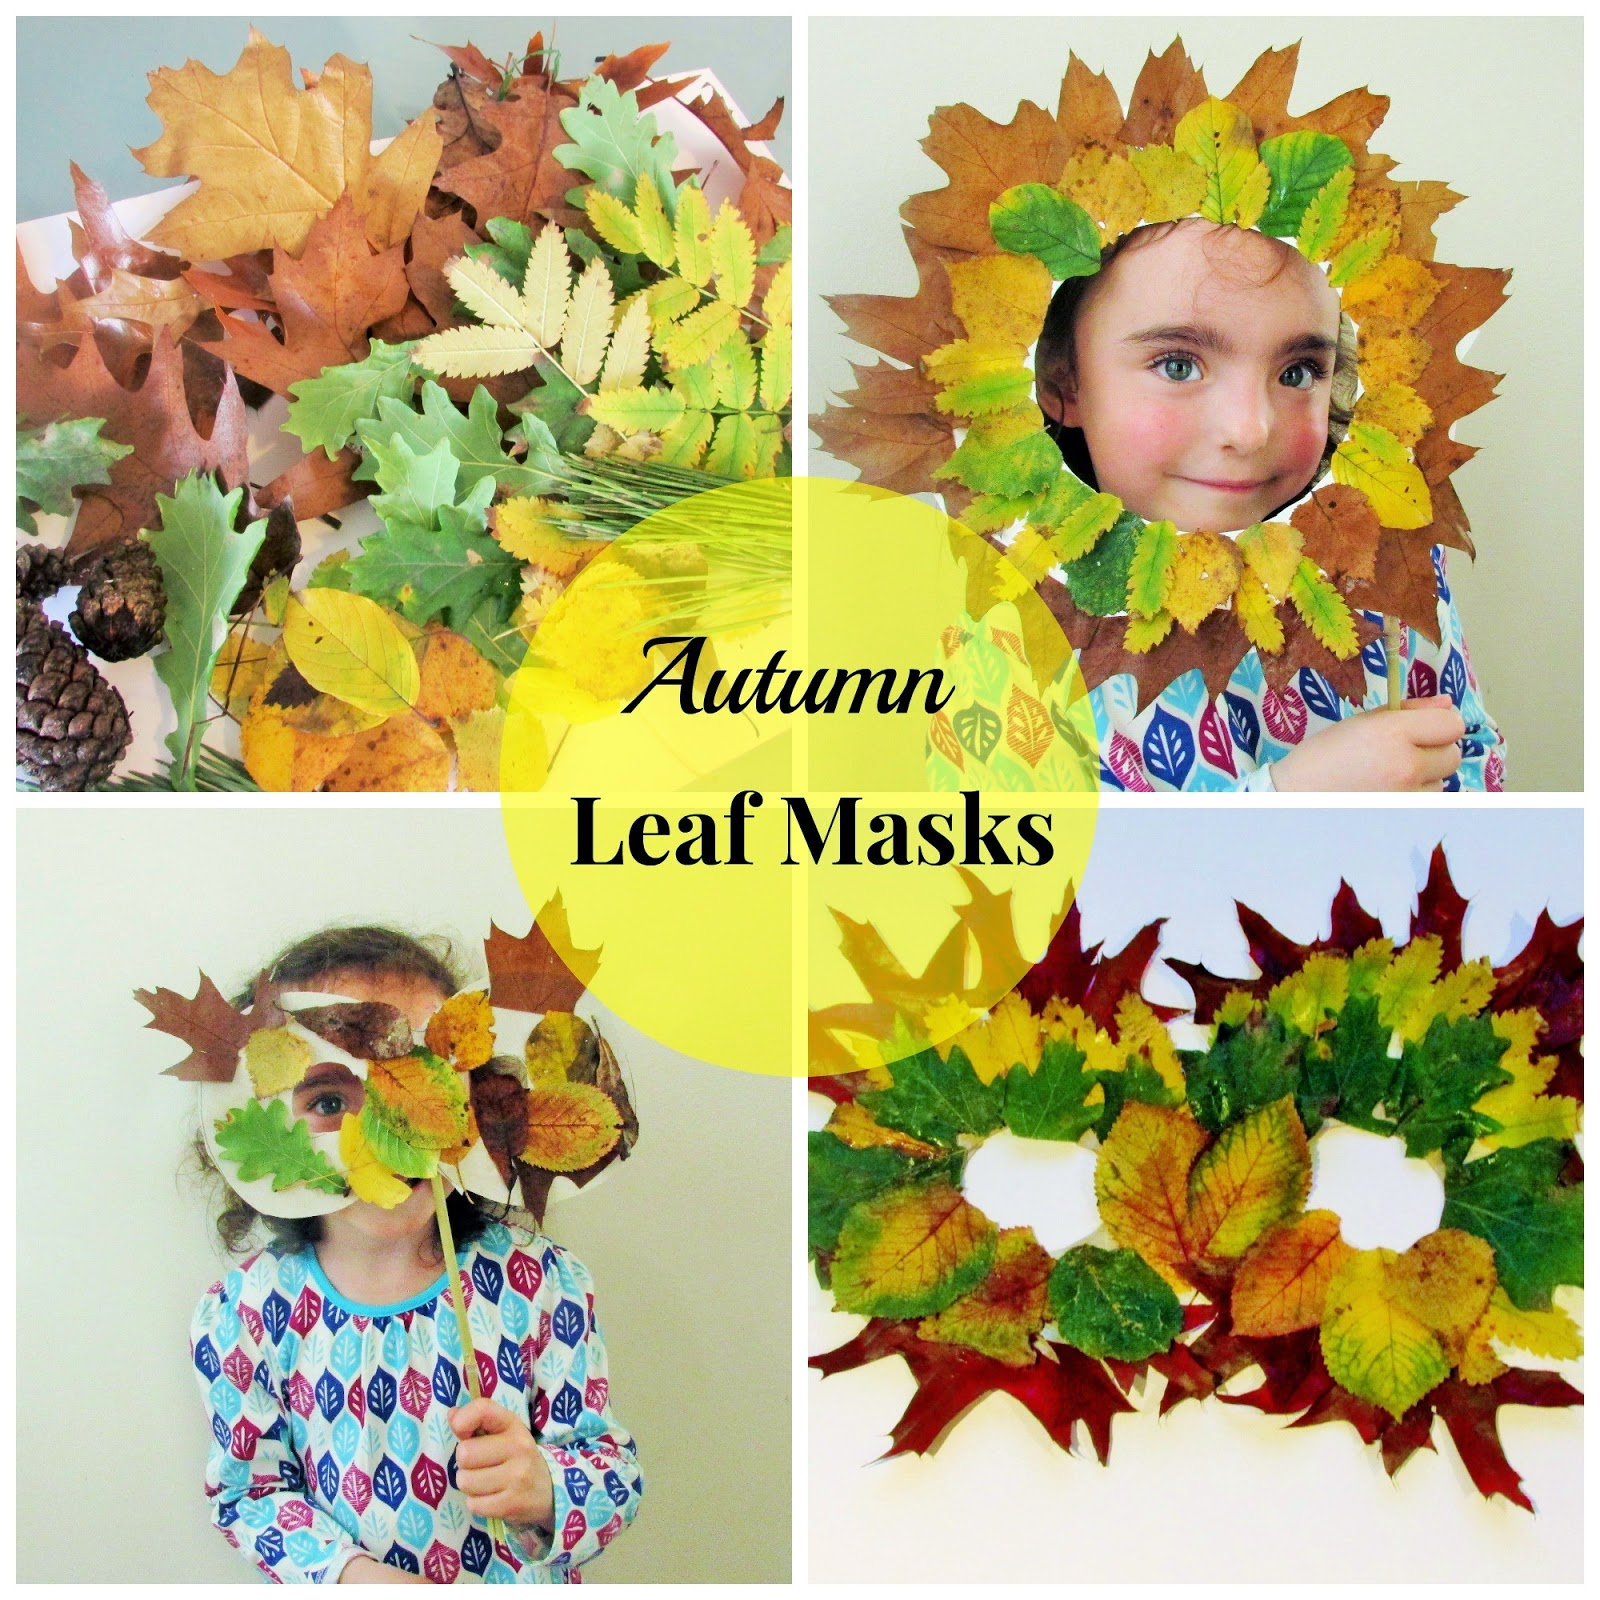 Nature Walk: Autumn Leaf Masks